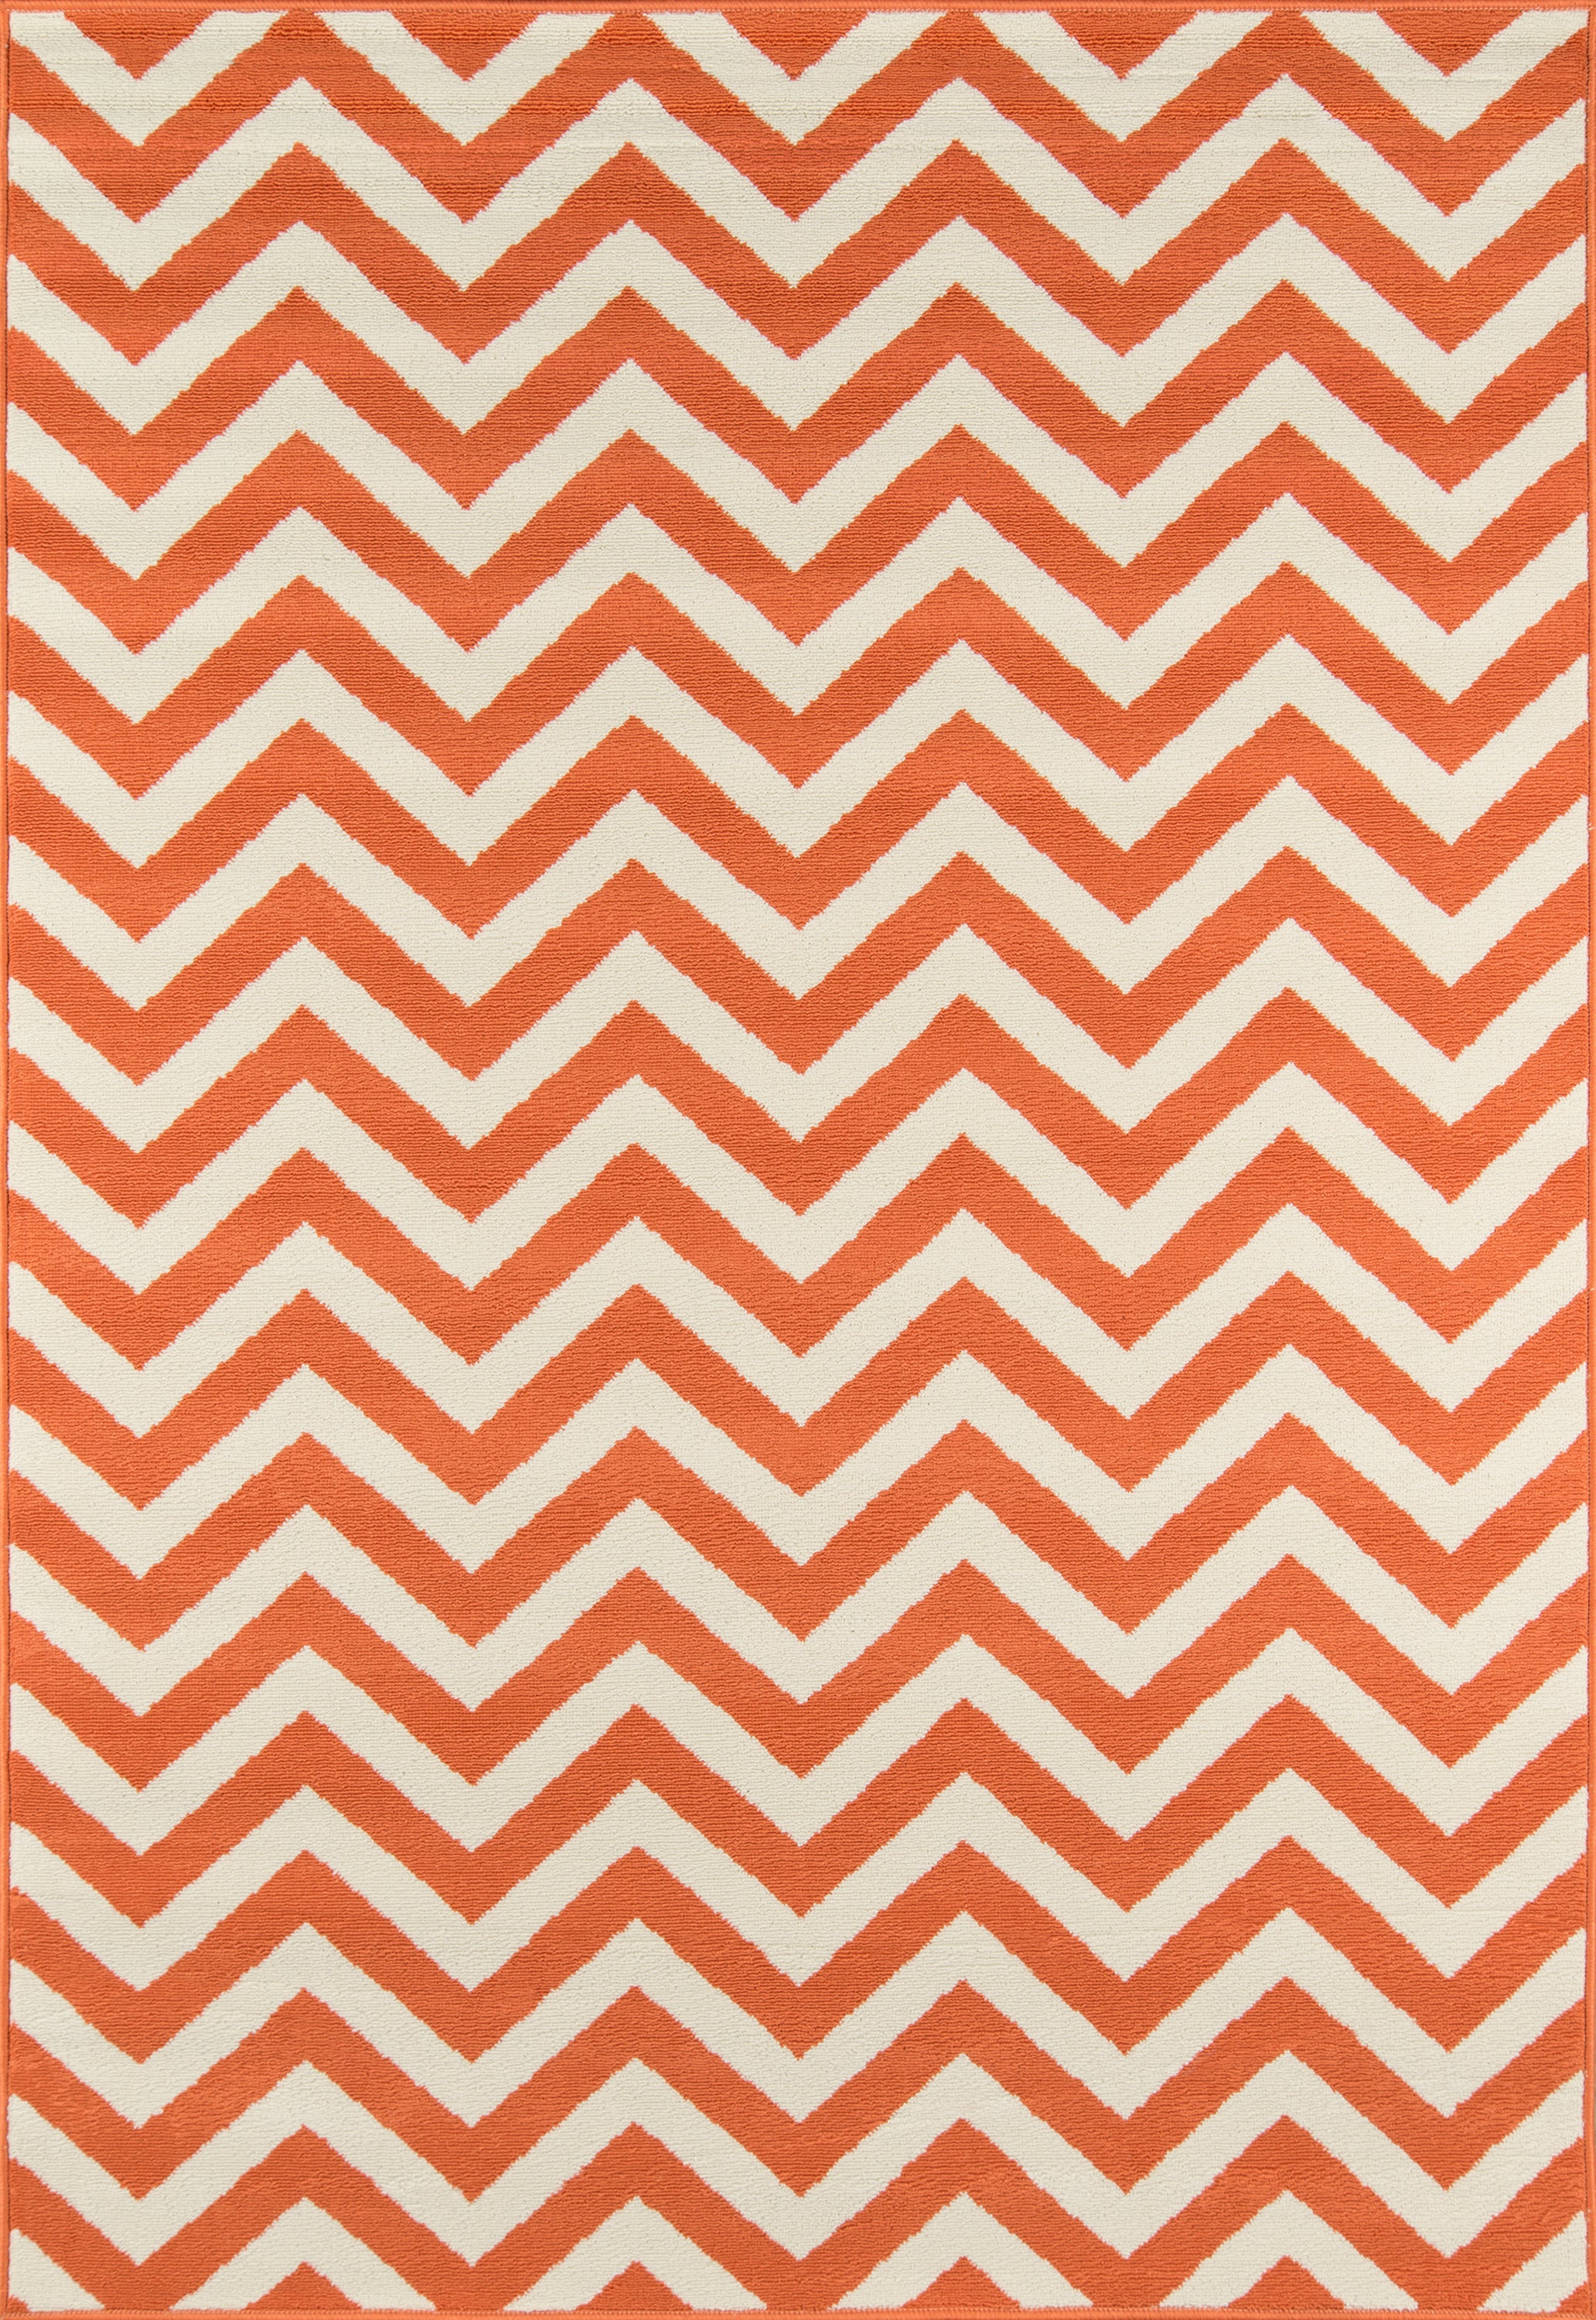 Rectangle 53x76 Orange Chevron Machine Made Synthetics Contemporary recommended for Kitchen, Bedroom, Bathroom, Outdoor, Dining Room, Office, Hallway, Living Room